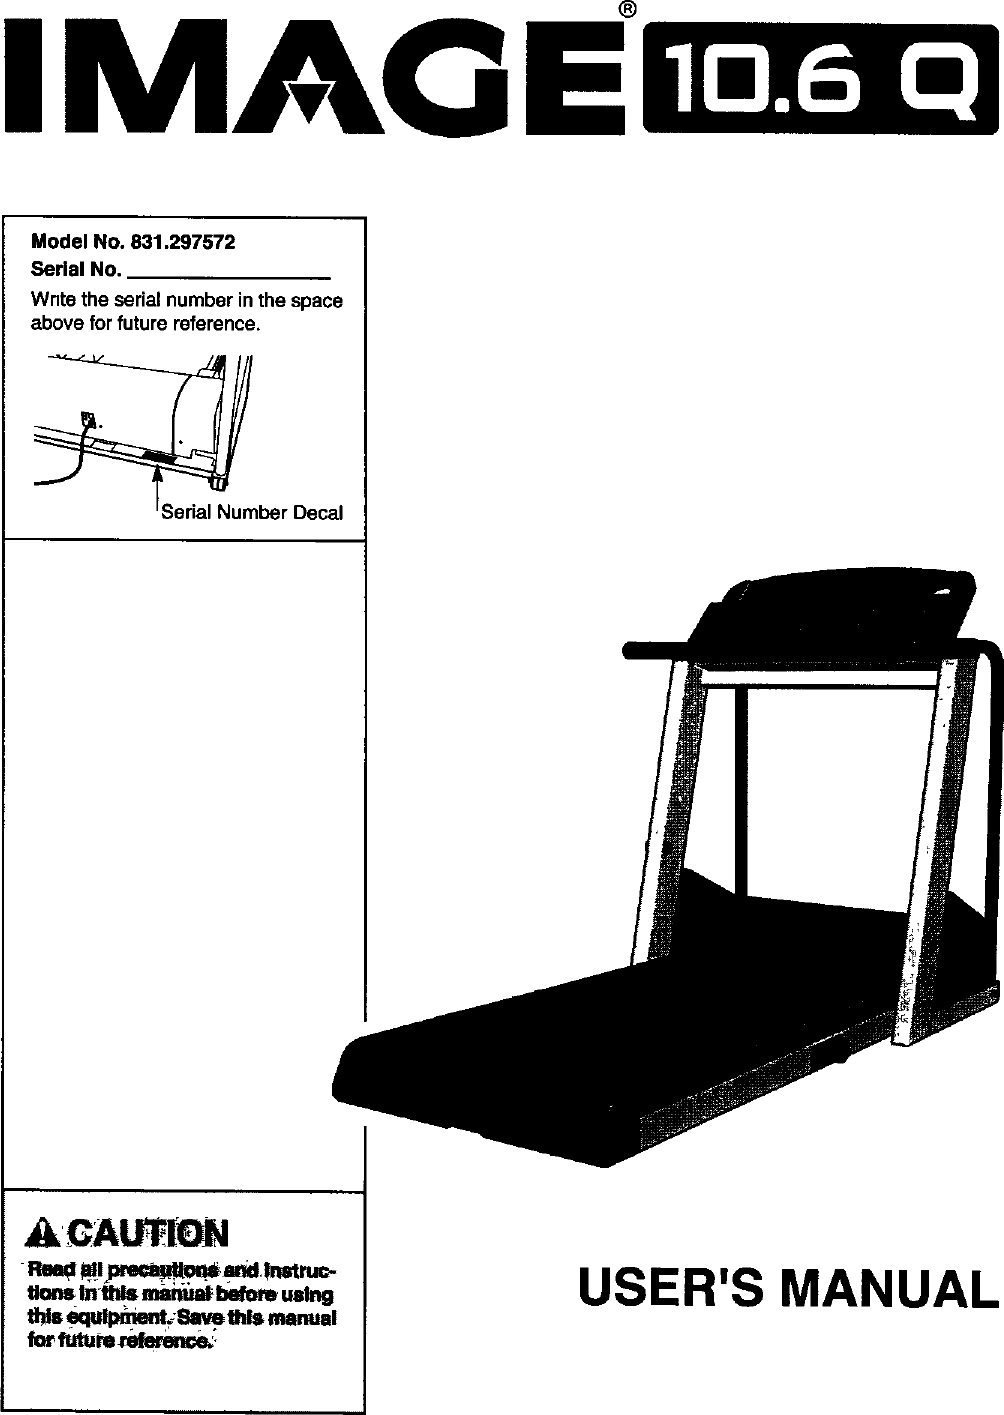 Image 831297572 User Manual 10.6Q Manuals And Guides L0303003